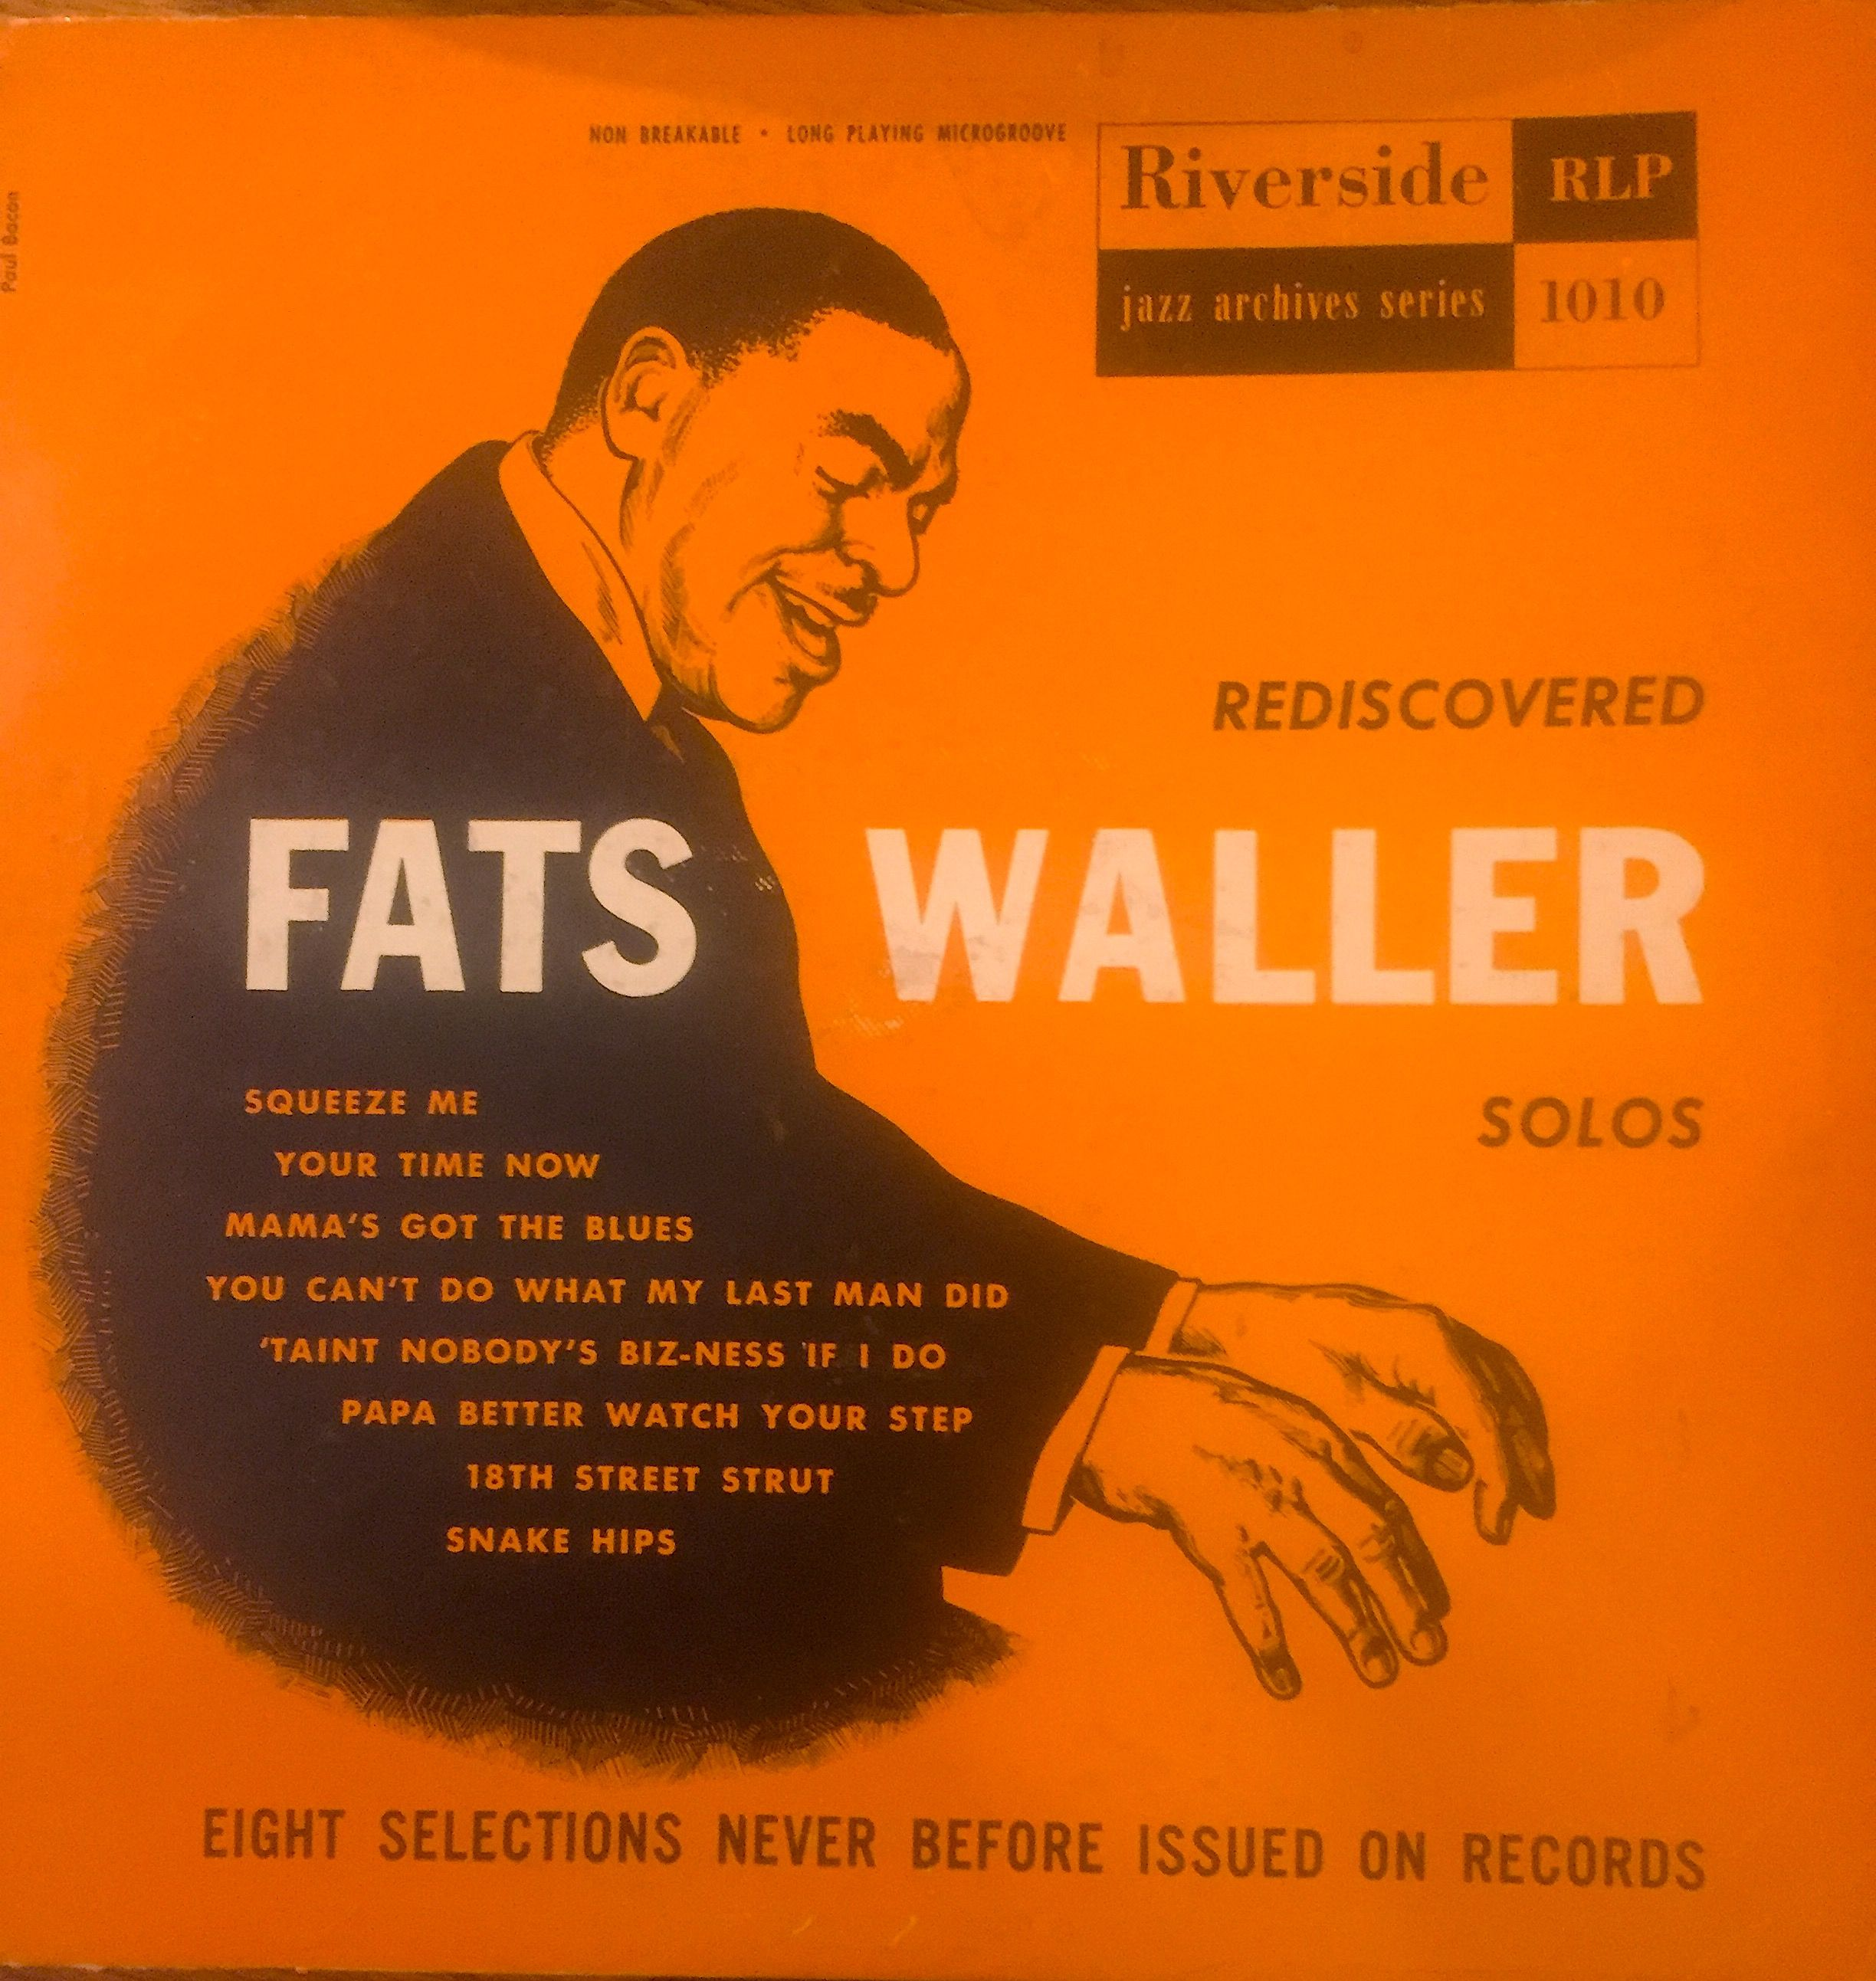 Fats Waller Rediscovered Solos Riverside Records Rlp 1010 10 Lp With Images Fats Waller Vinyl Record Album Classic Album Covers